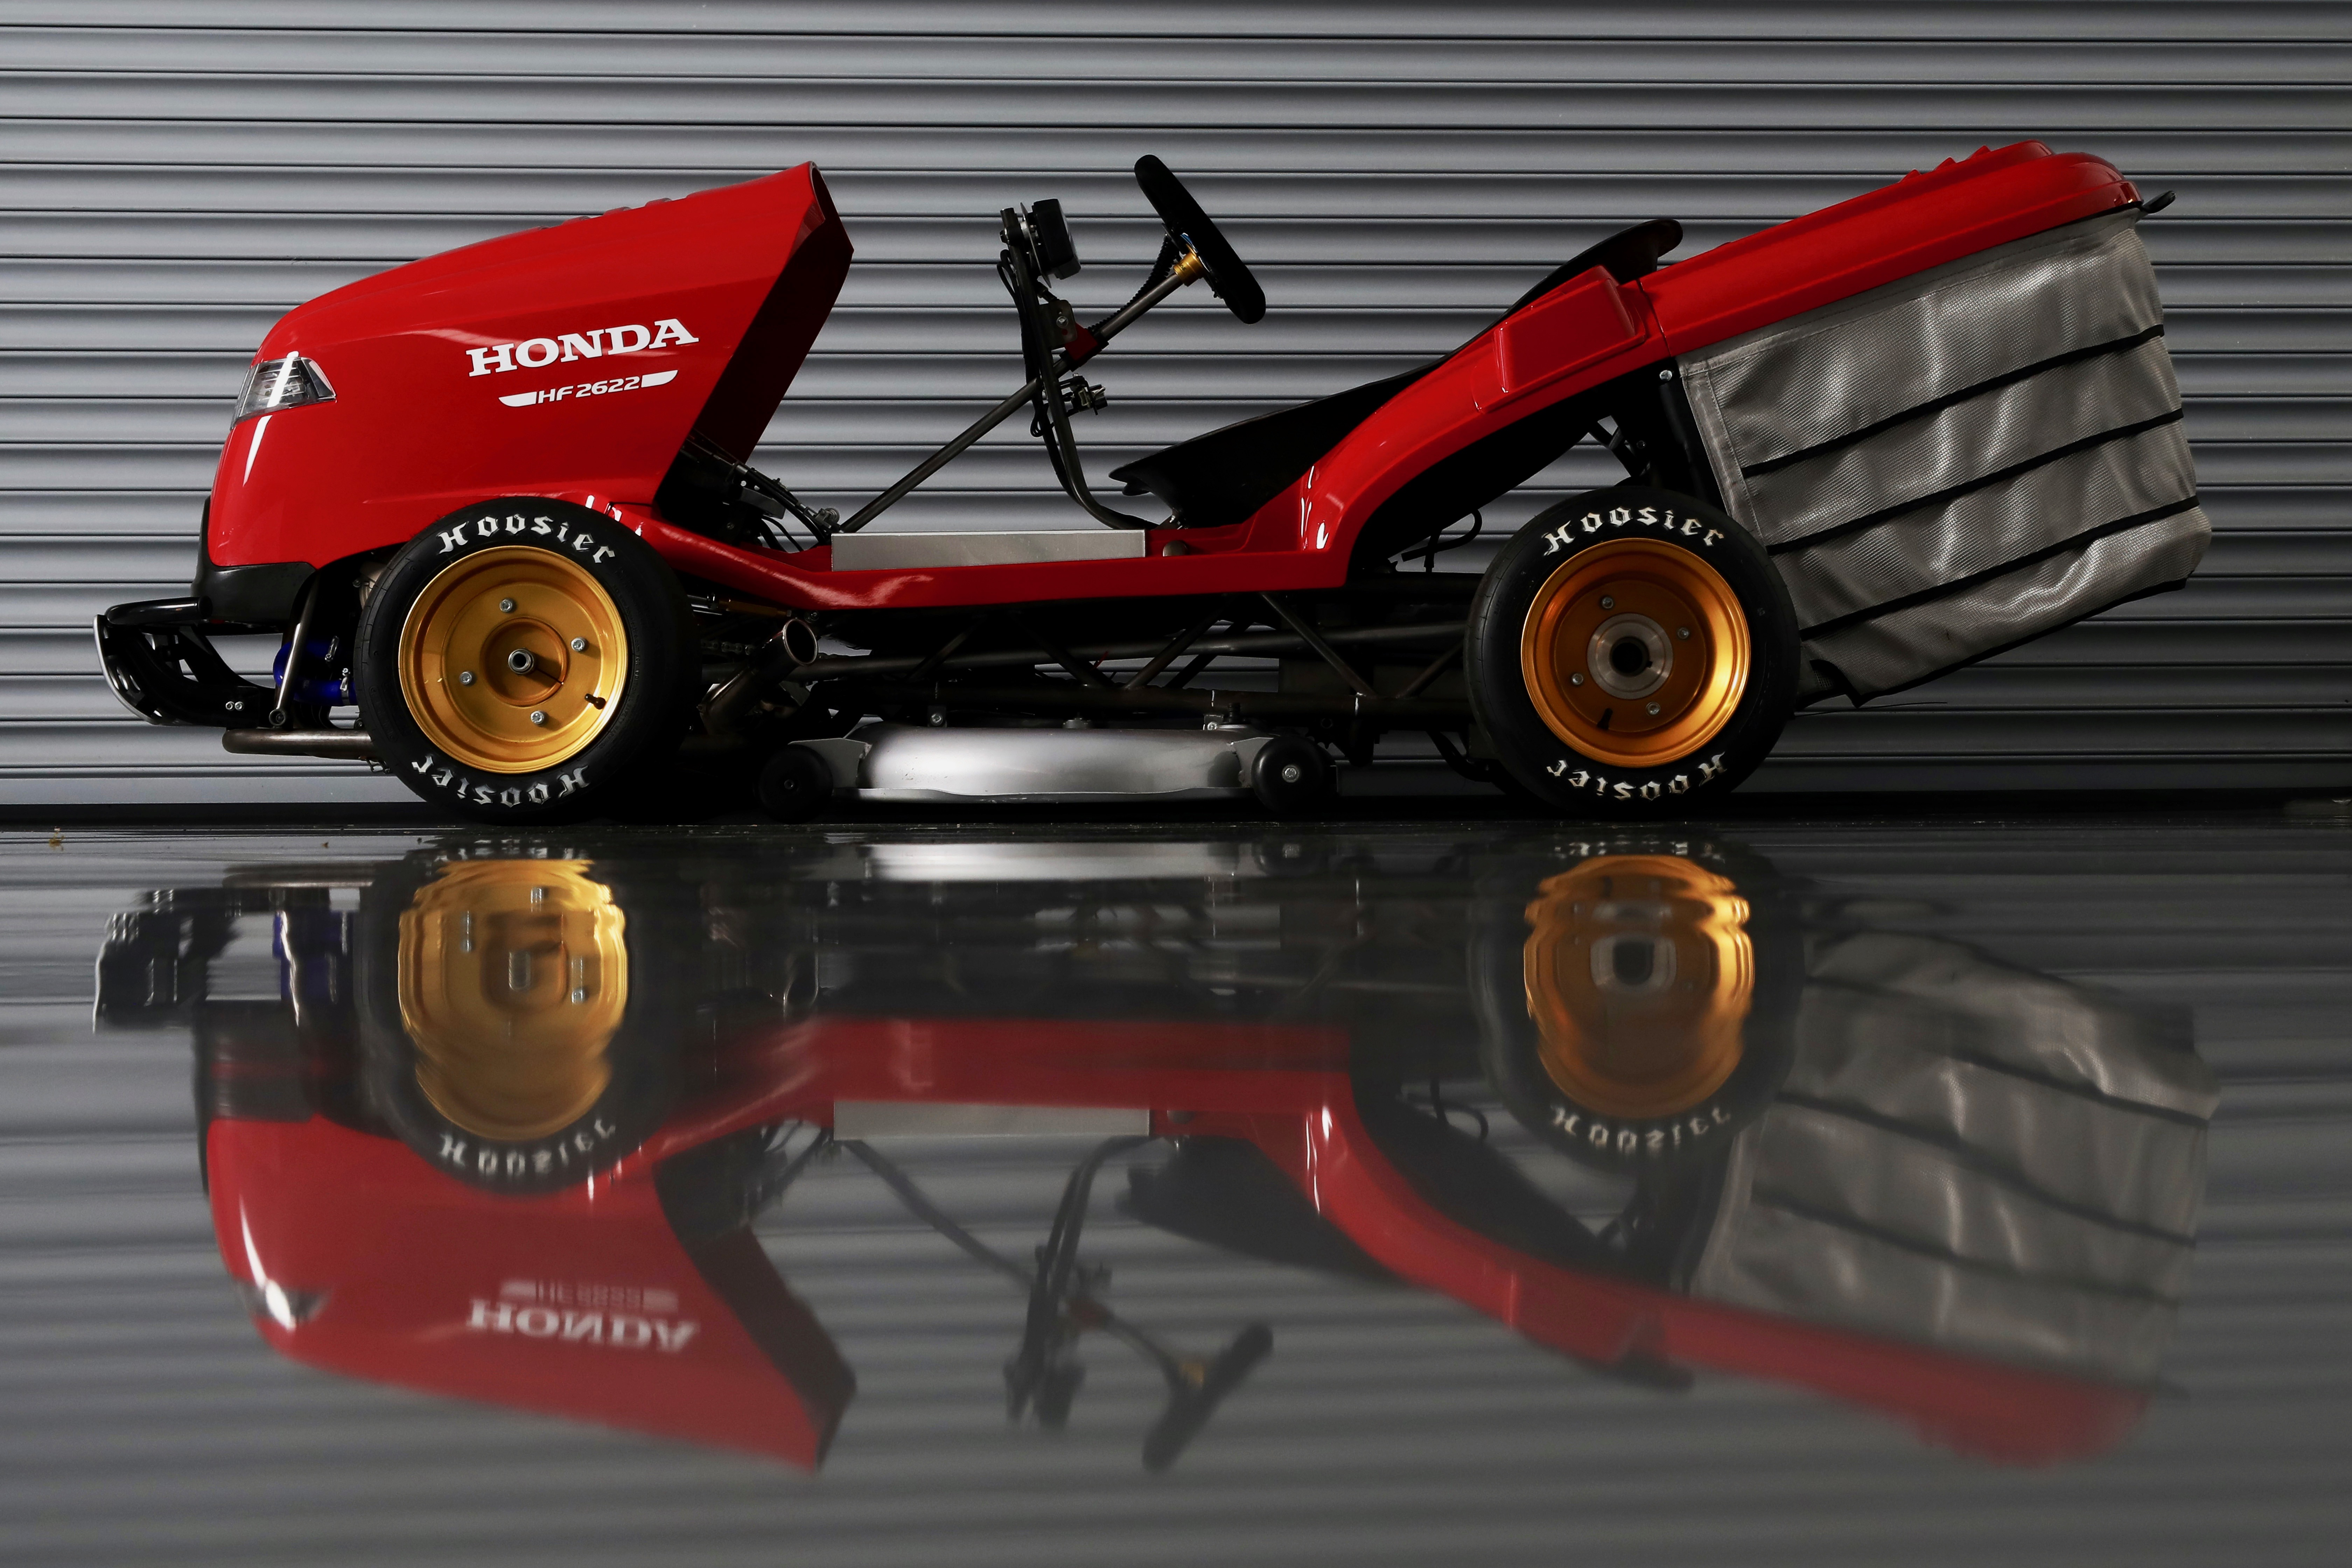 Honda seeks to regain honors for world's fastest lawnmower